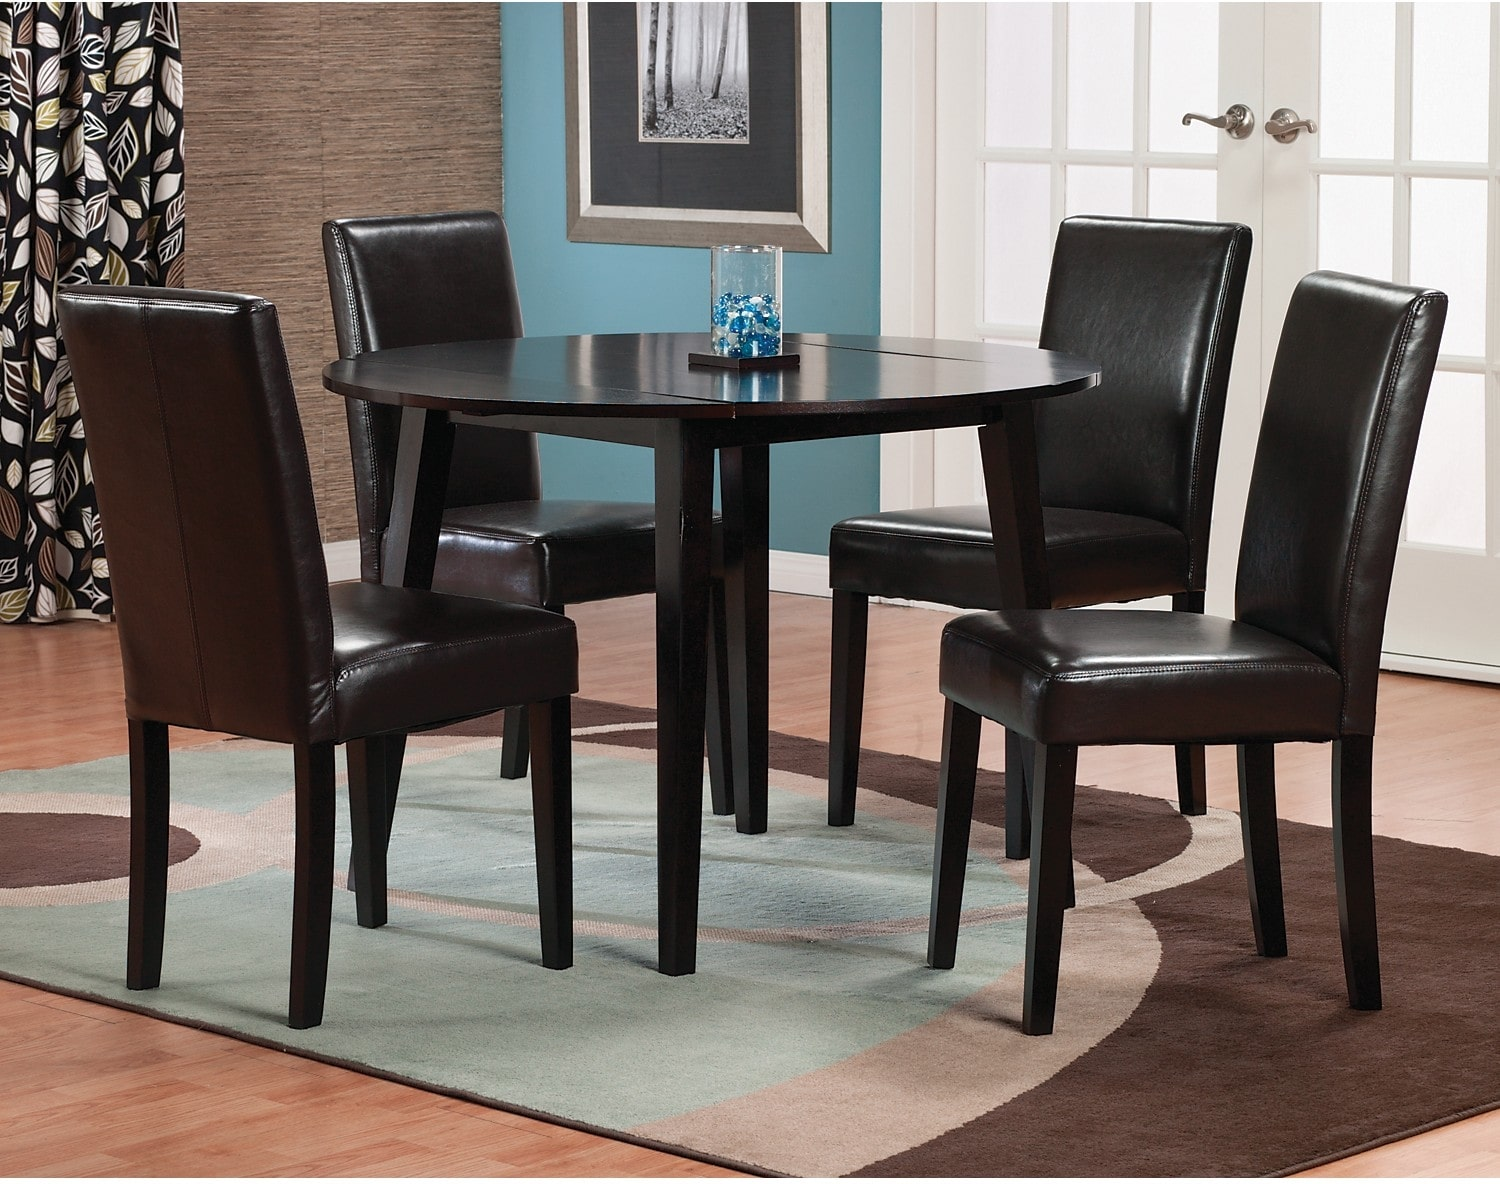 Dakota 5-Piece Round Table Dining Package with Brown Chairs